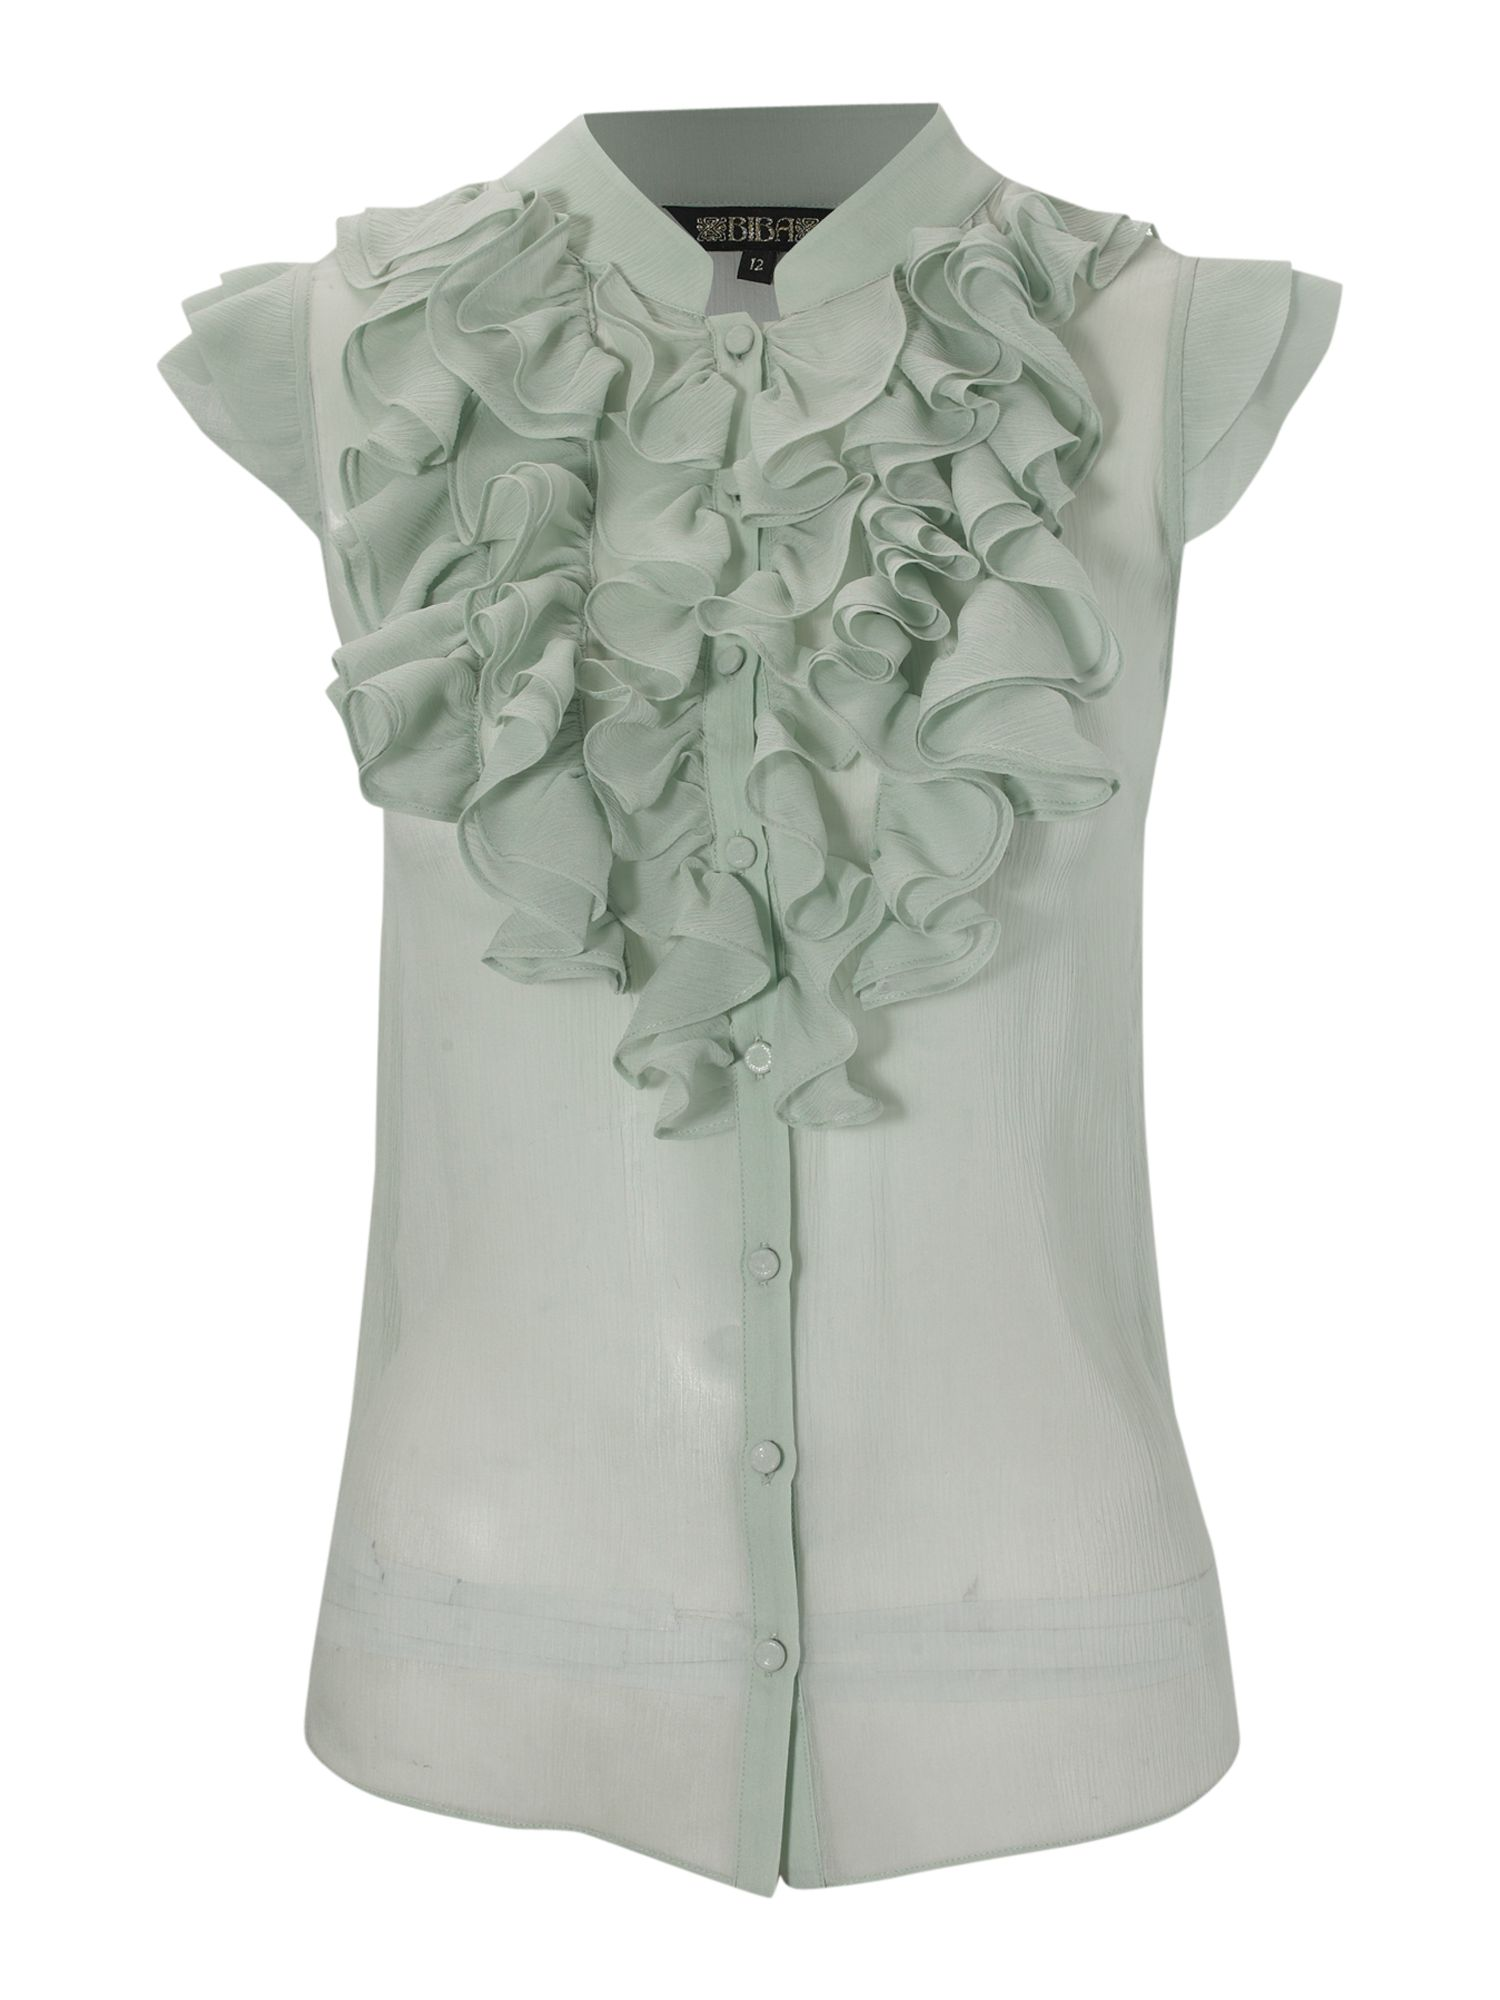 Biba Sleeveless silk frill blouse - Mint product image